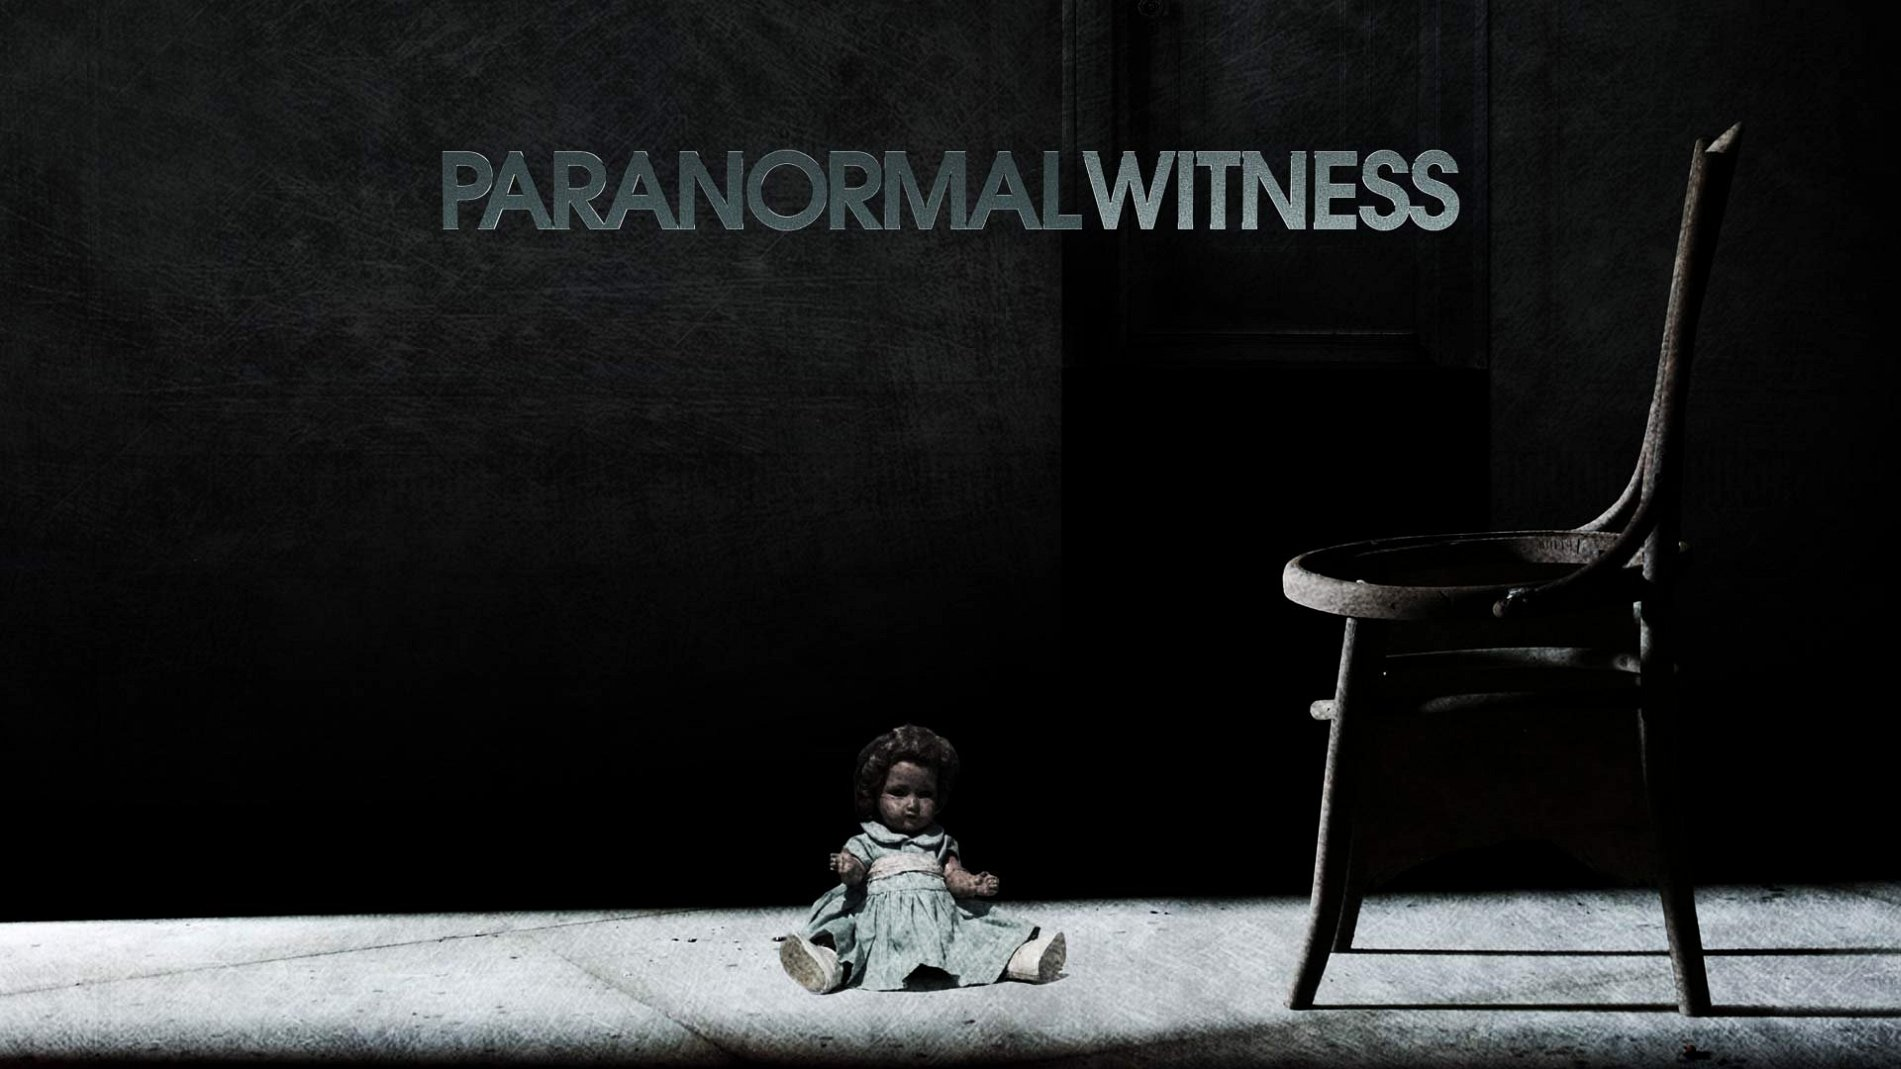 Sixx Paranormal Witness